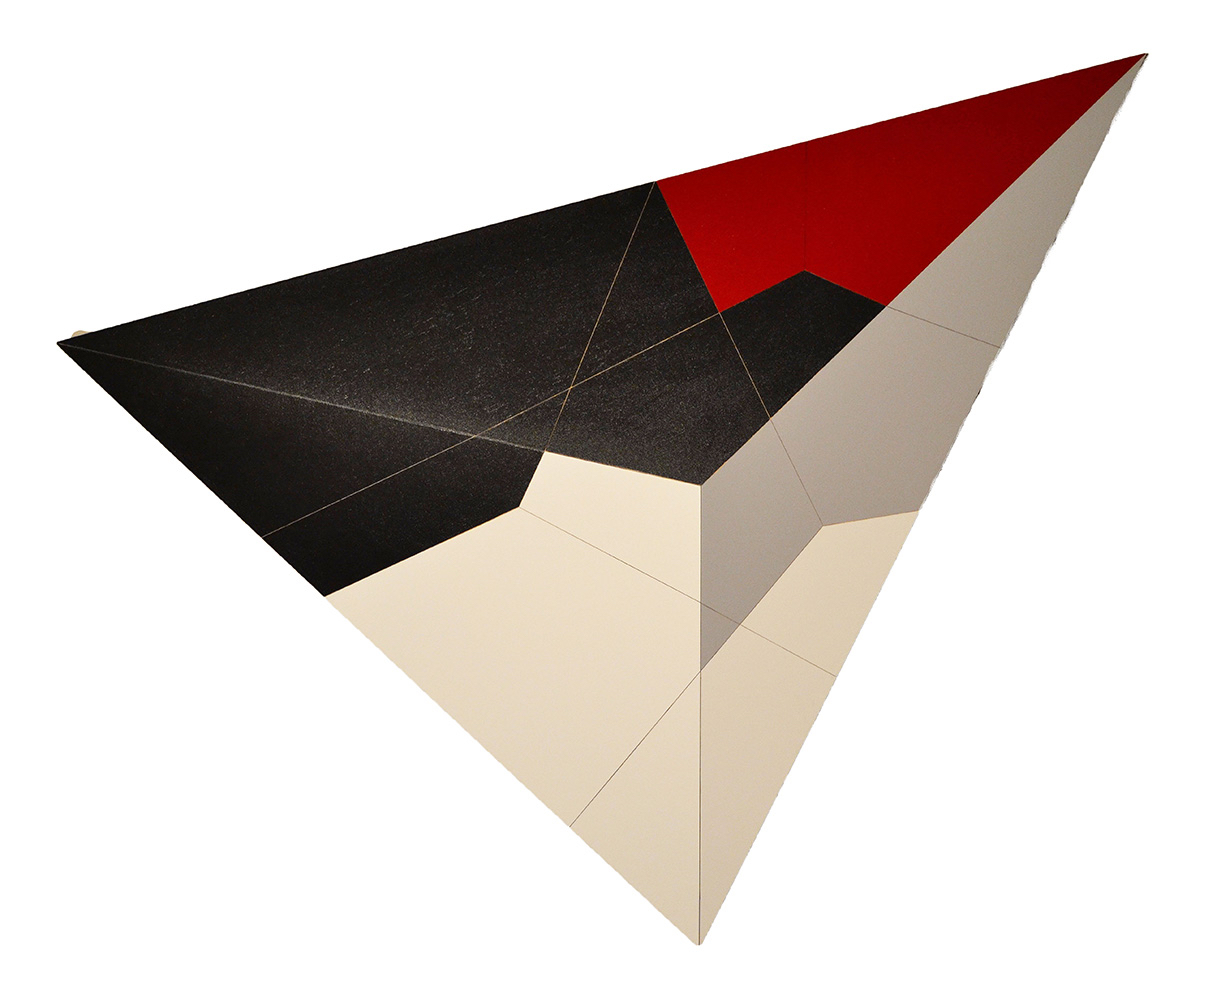 Lars Fischedick, <i>Triangle</i>